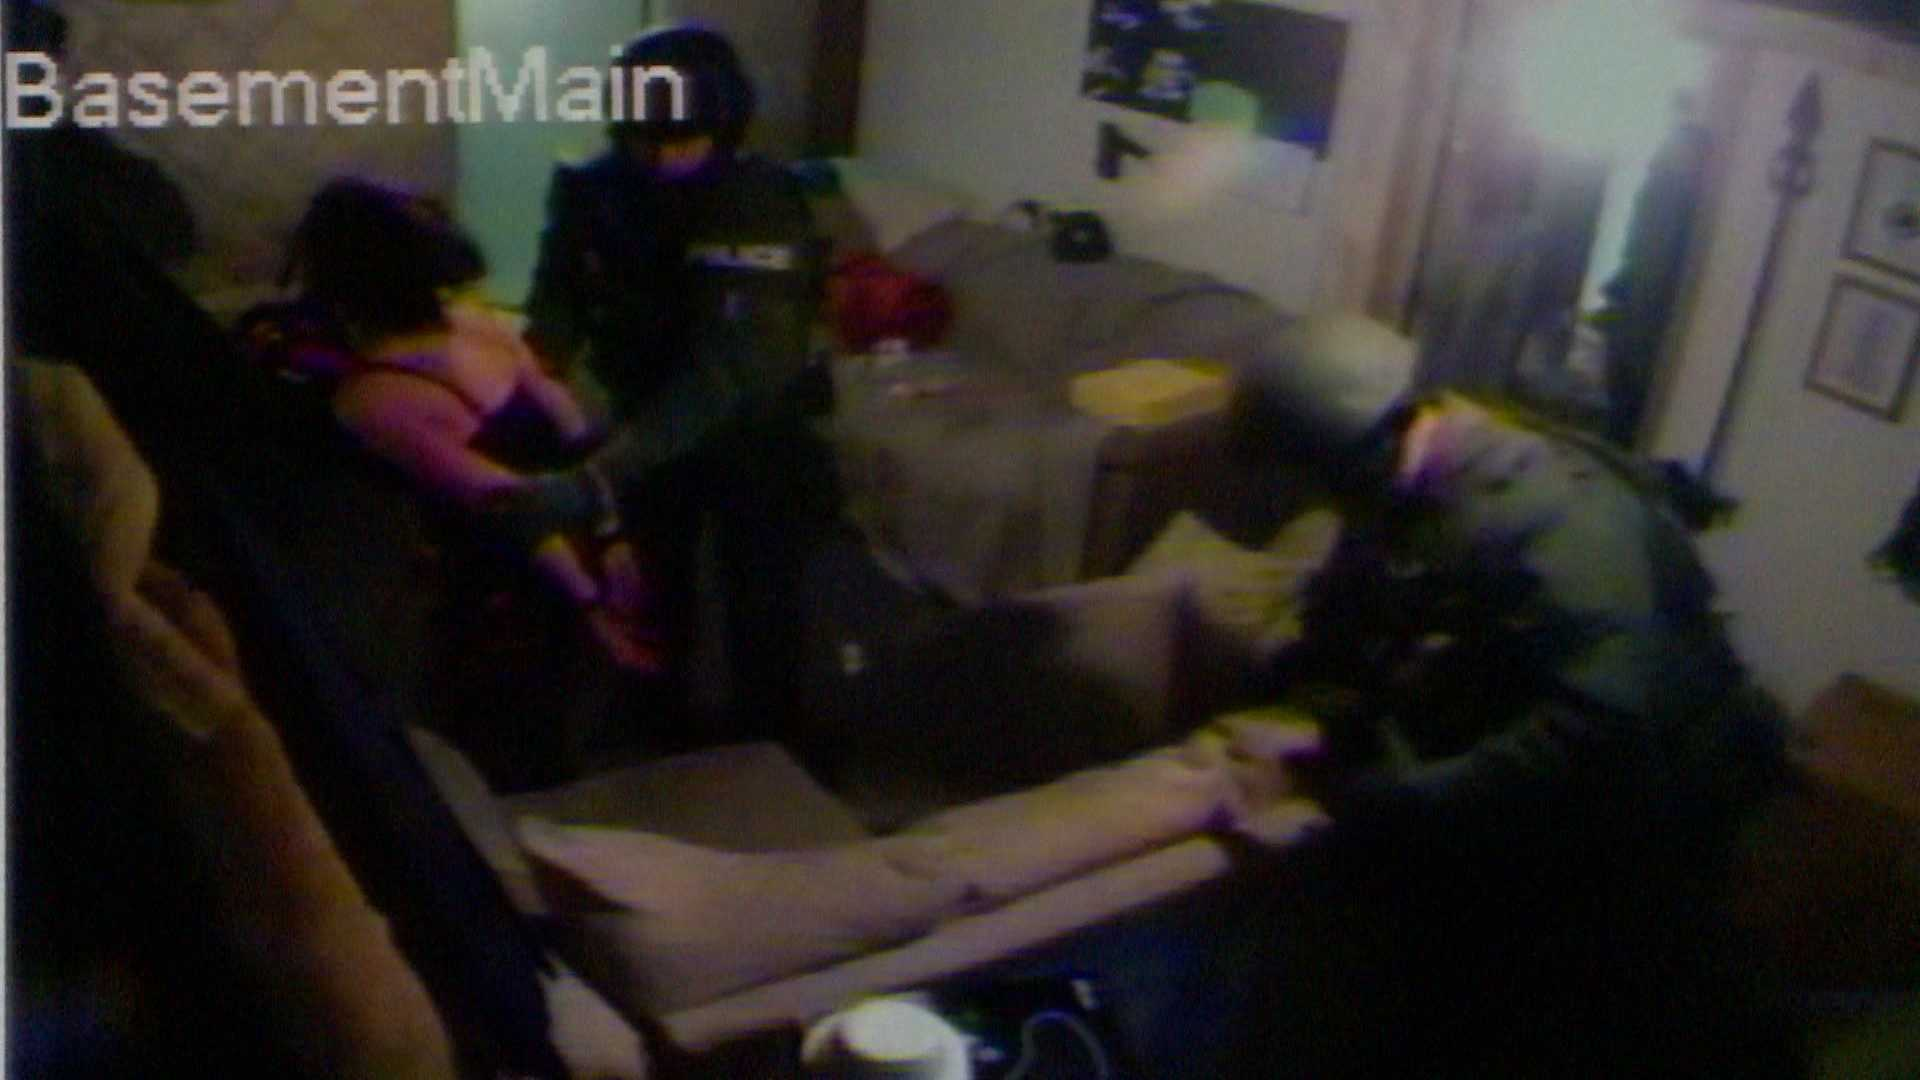 Freeze frame from the Prince family's basement surveillance camera